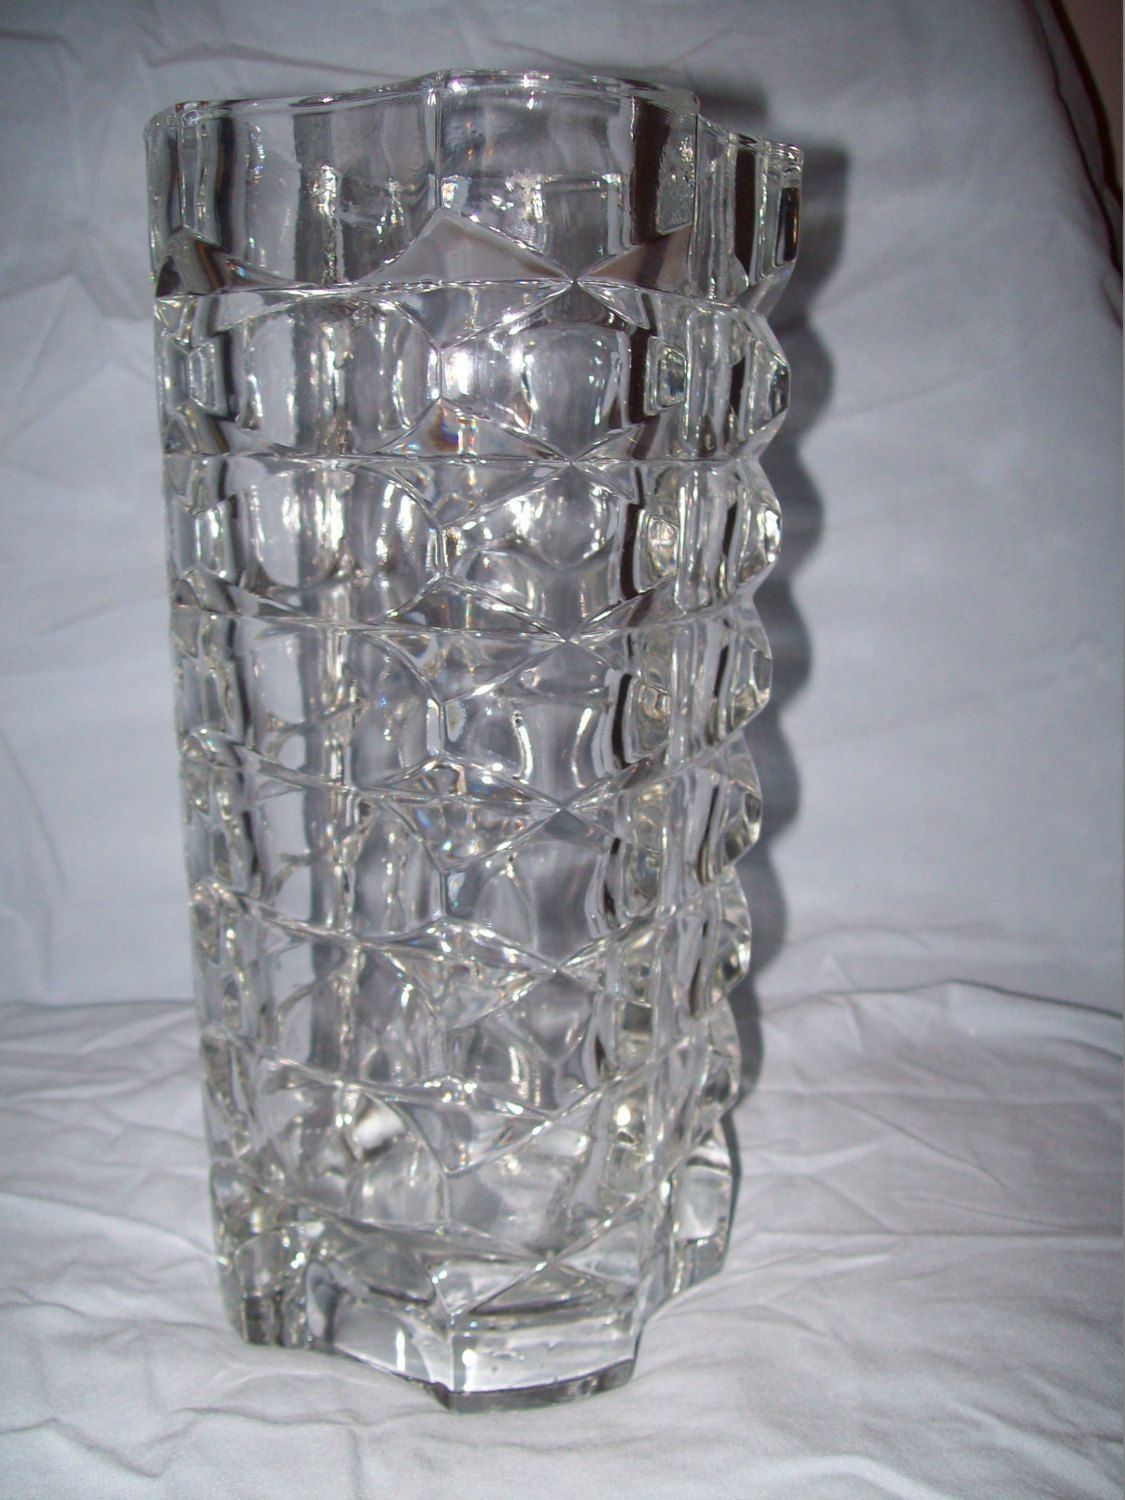 cheap tall skinny glass vases of clear glass vases image clear glass very old large vase leaded glass with clear glass vases image clear glass very old large vase leaded glass very heavy 66 00